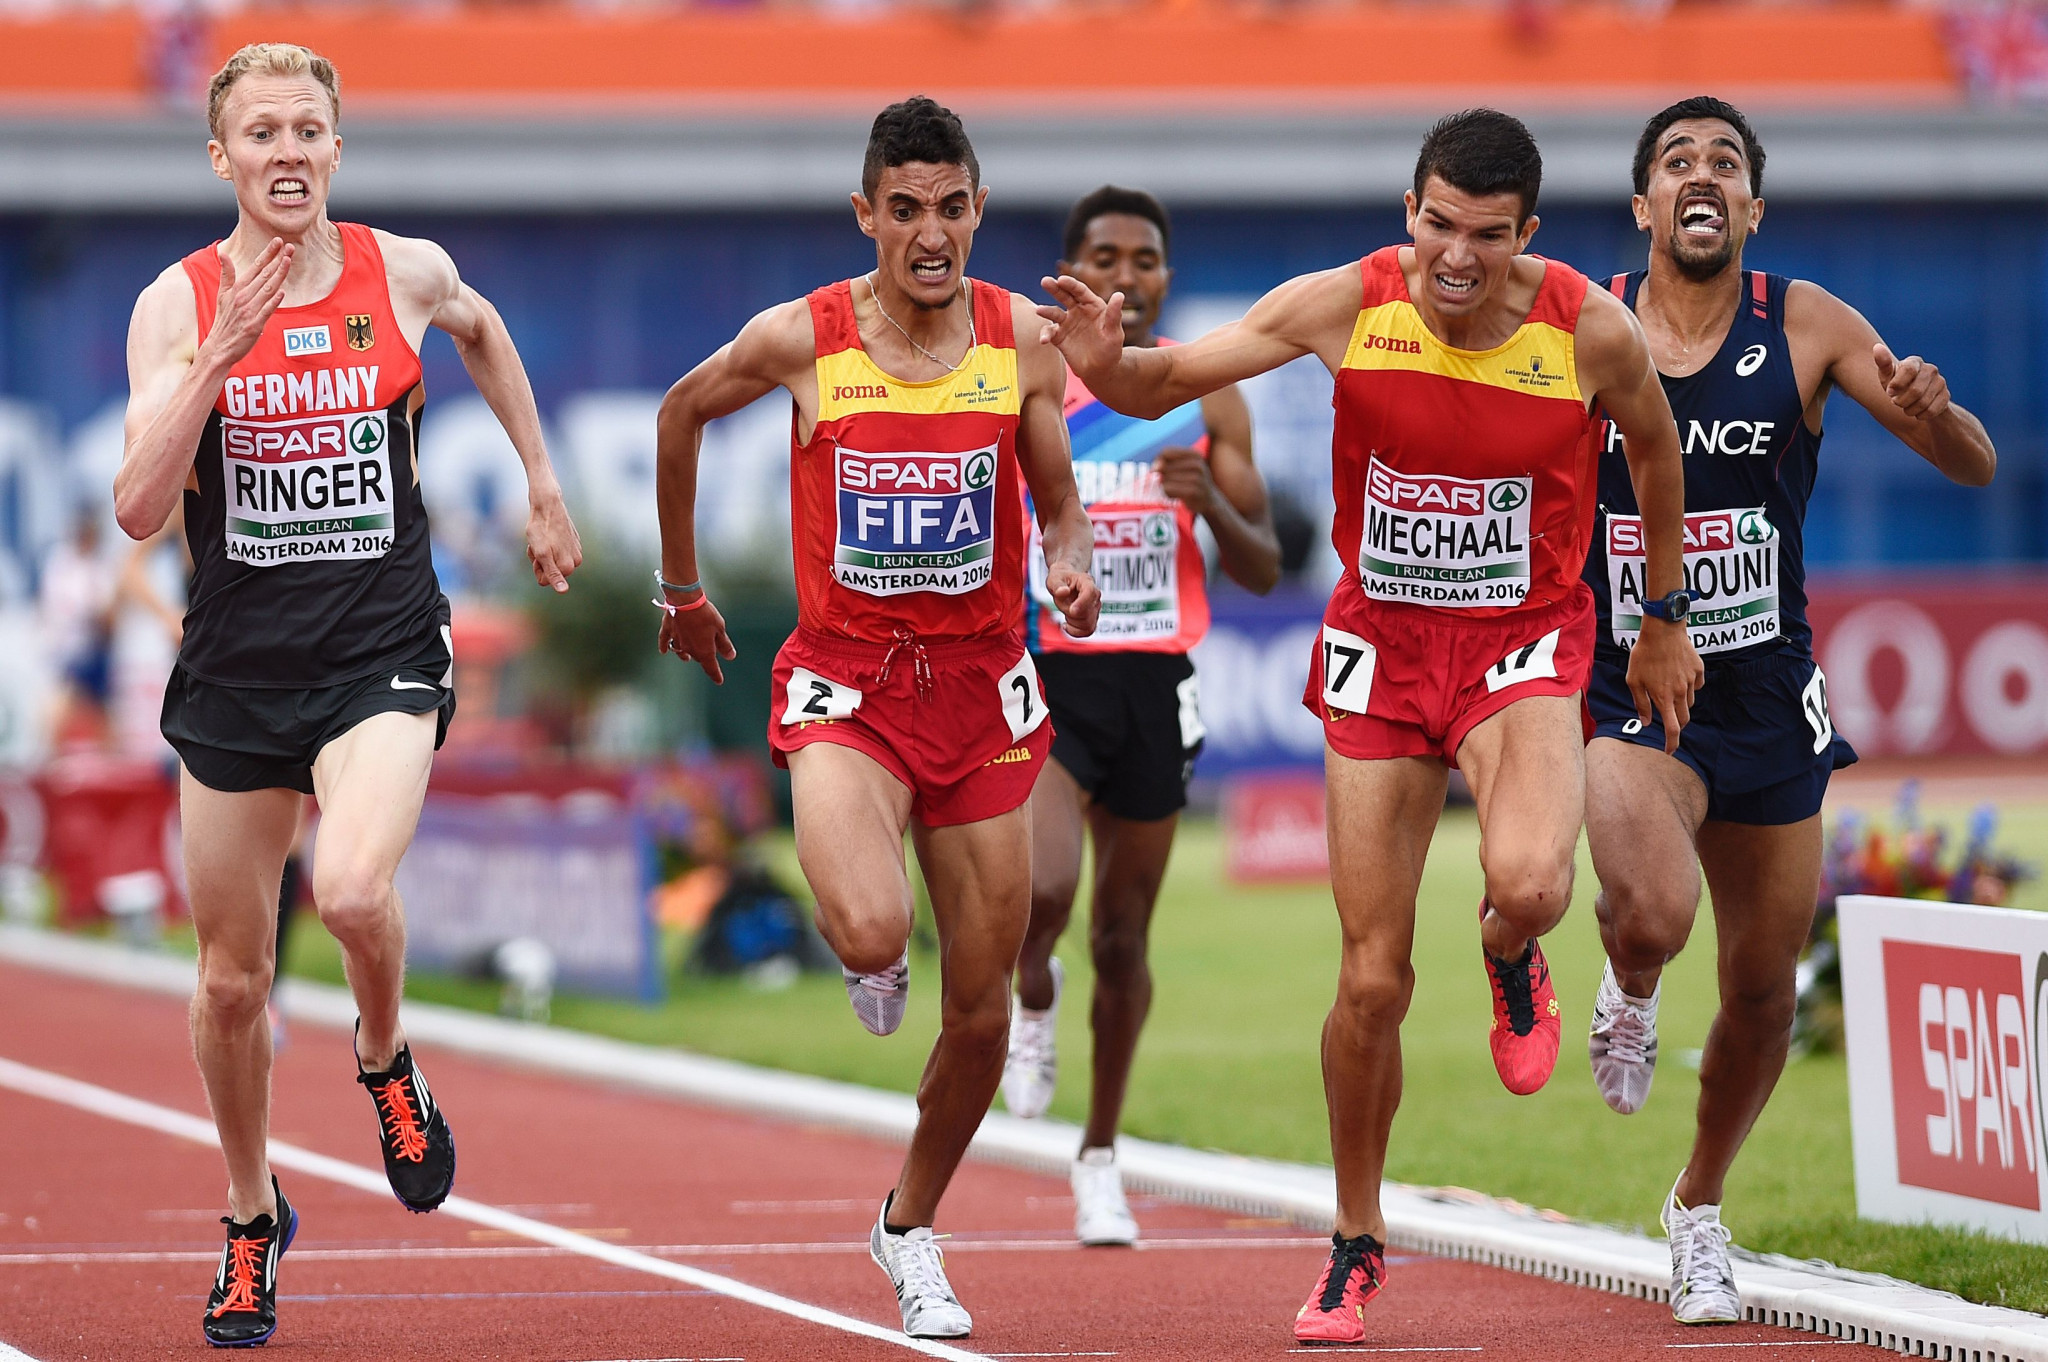 Ilias Fifa won the men's 5,000 metres gold medal at the 2016 European Athletics Championships in Dutch capital Amsterdam ©Getty Images